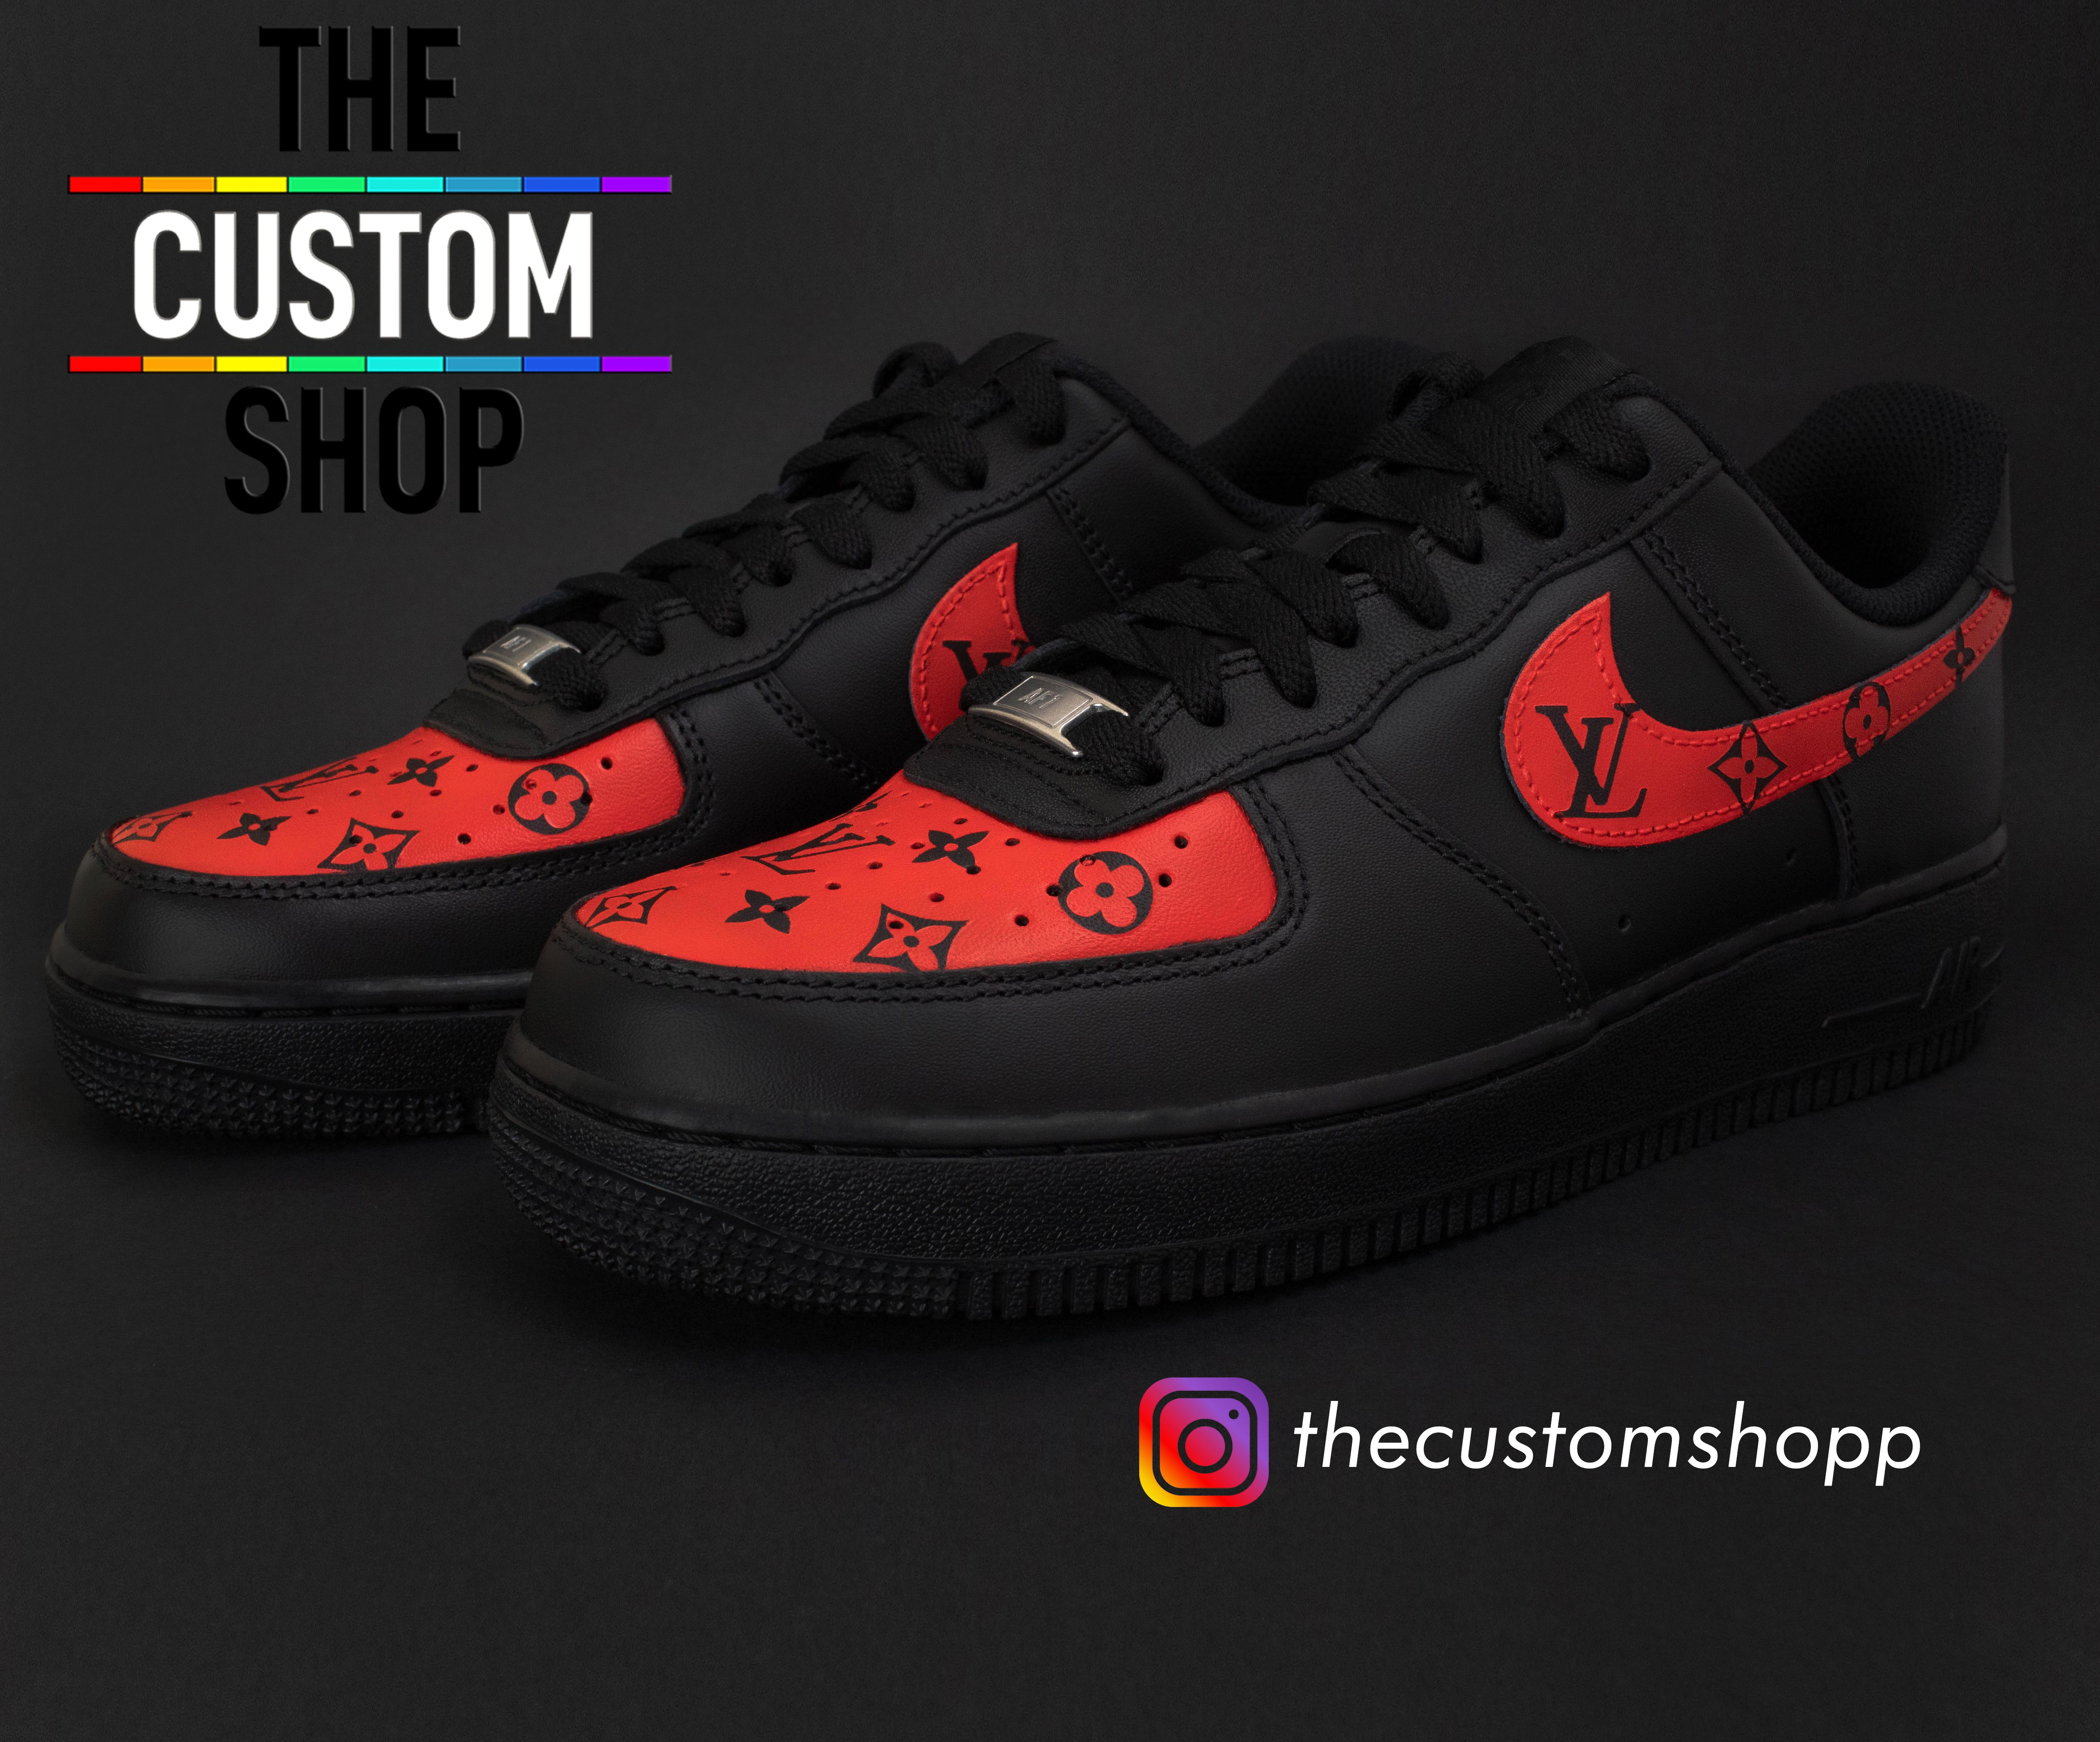 on sale 56678 0c5d4 Air Force 1 s - Louis Vuitton (Red) ❤ Buy Now on Etsy and Website! 🚛